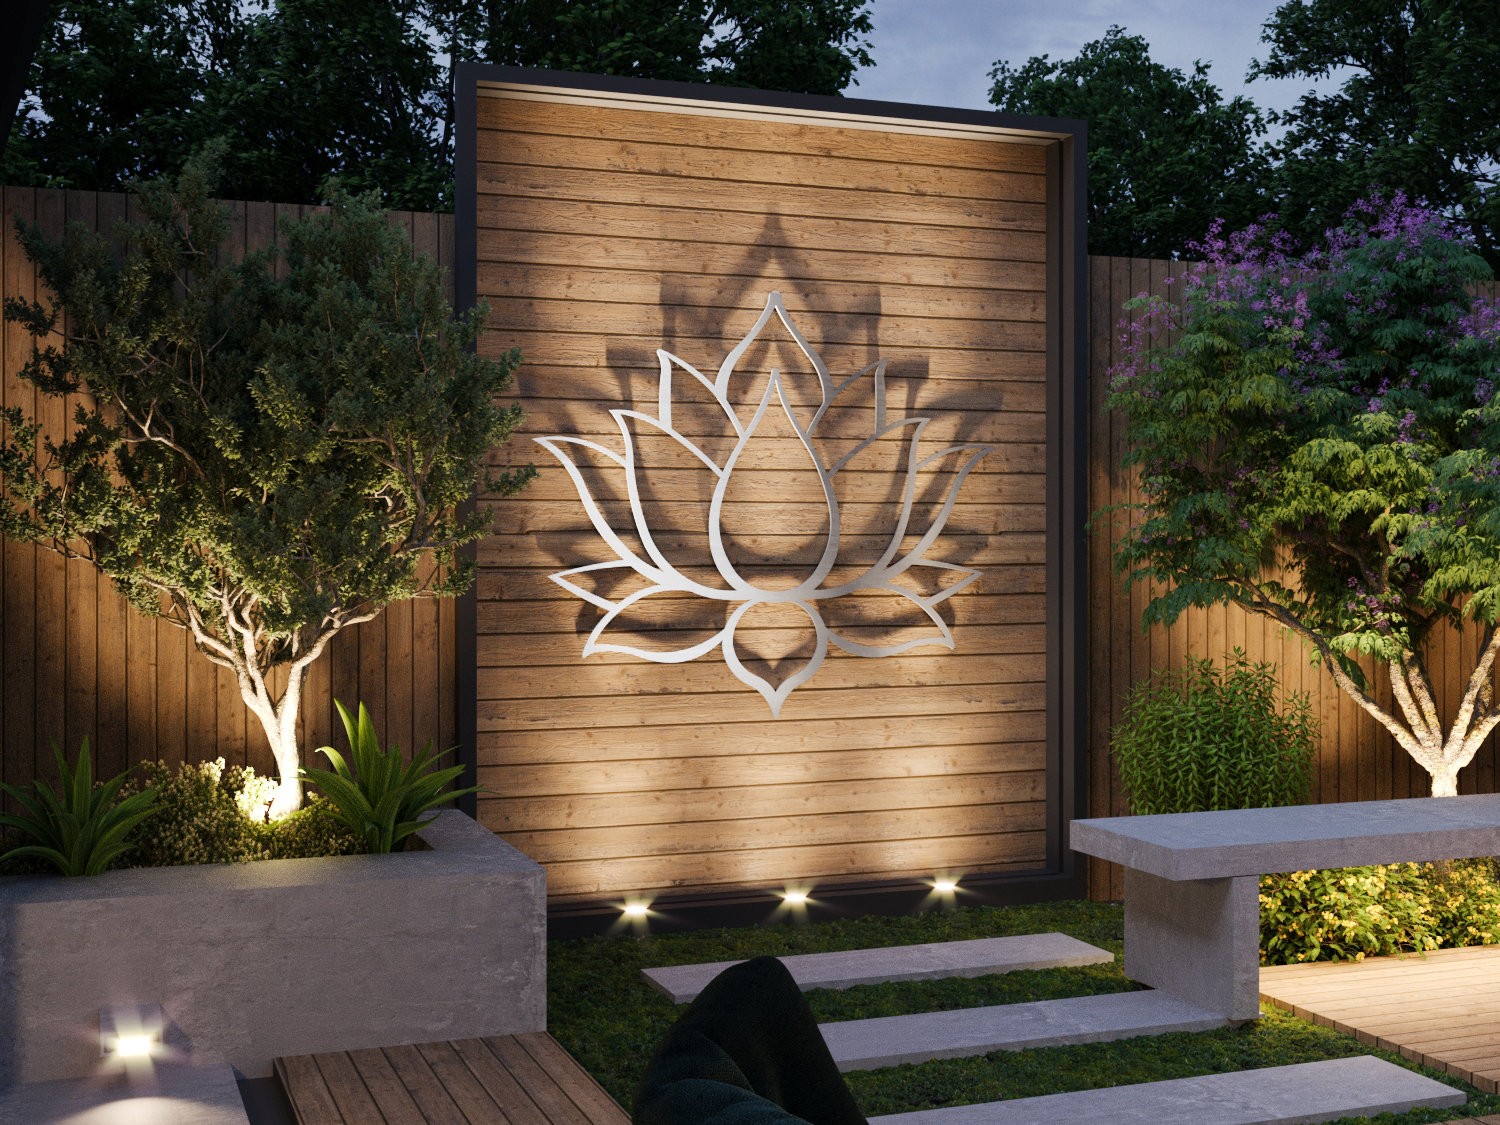 Lotus Flower Large Outdoor Metal Wall Art Garden Sculpture ...